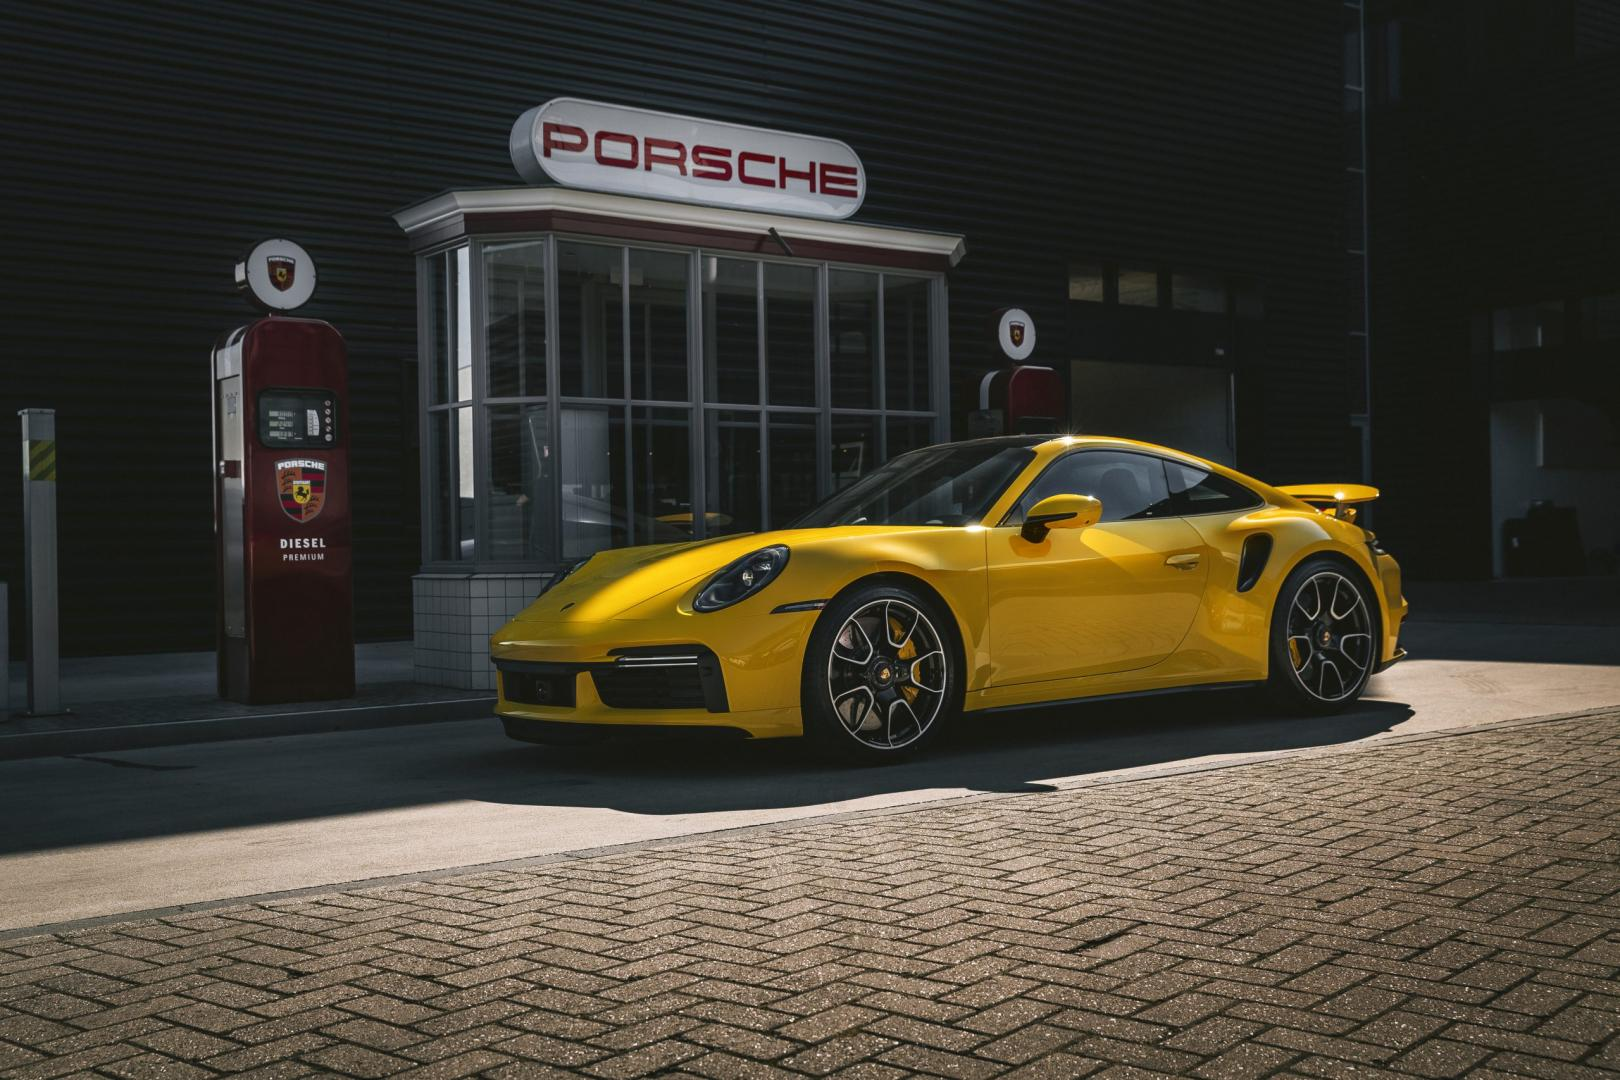 Porsche 911 Turbo S Geel in Nederland